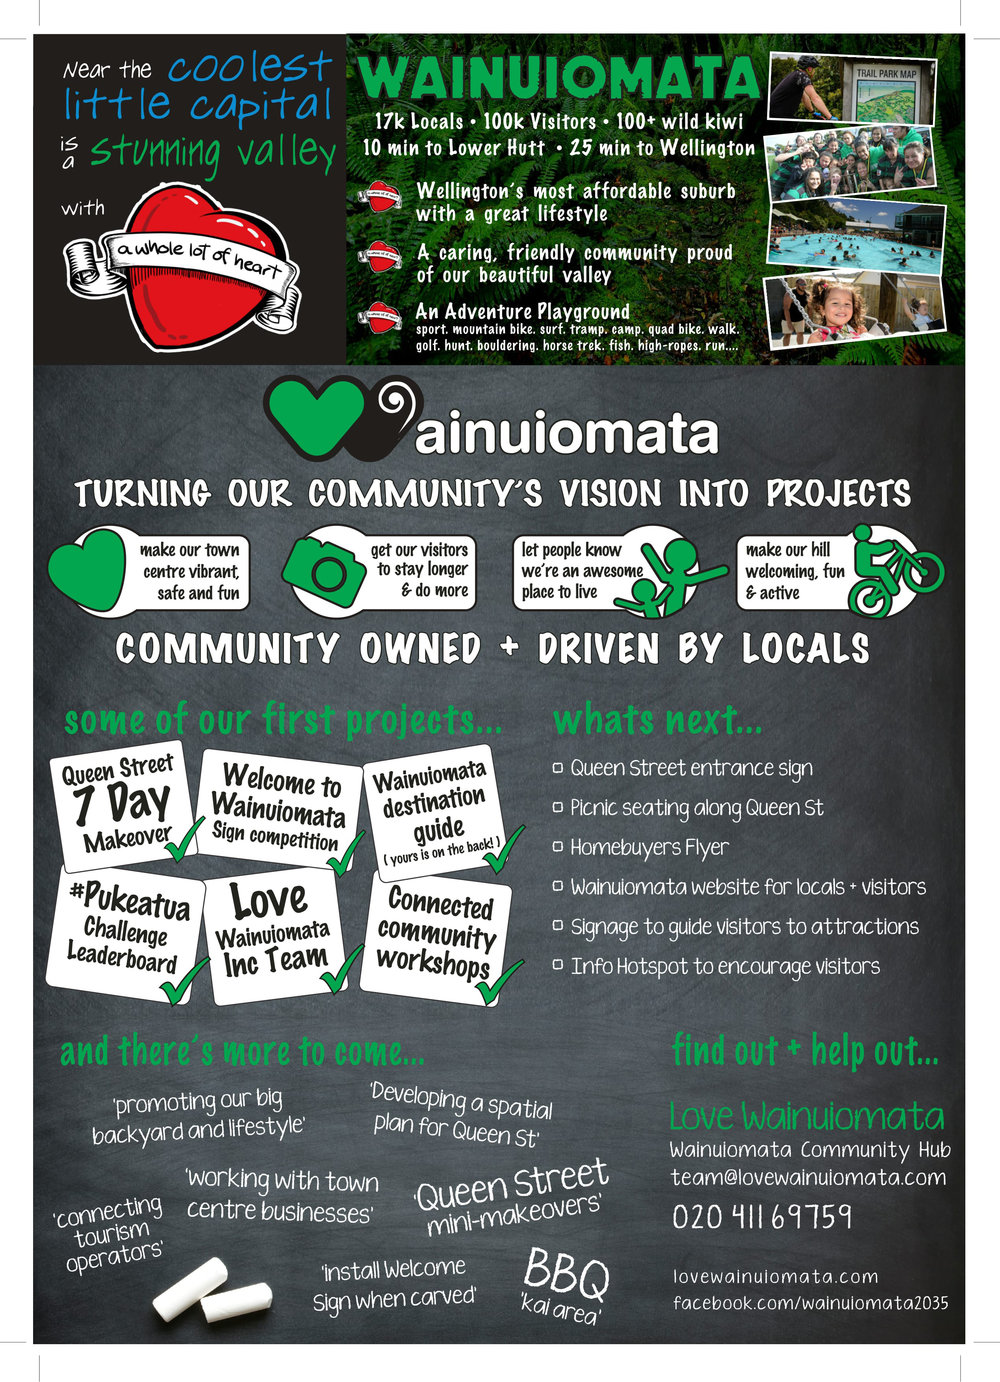 The Love Wainuiomata flyers which went out so locals could keep up-to-date.